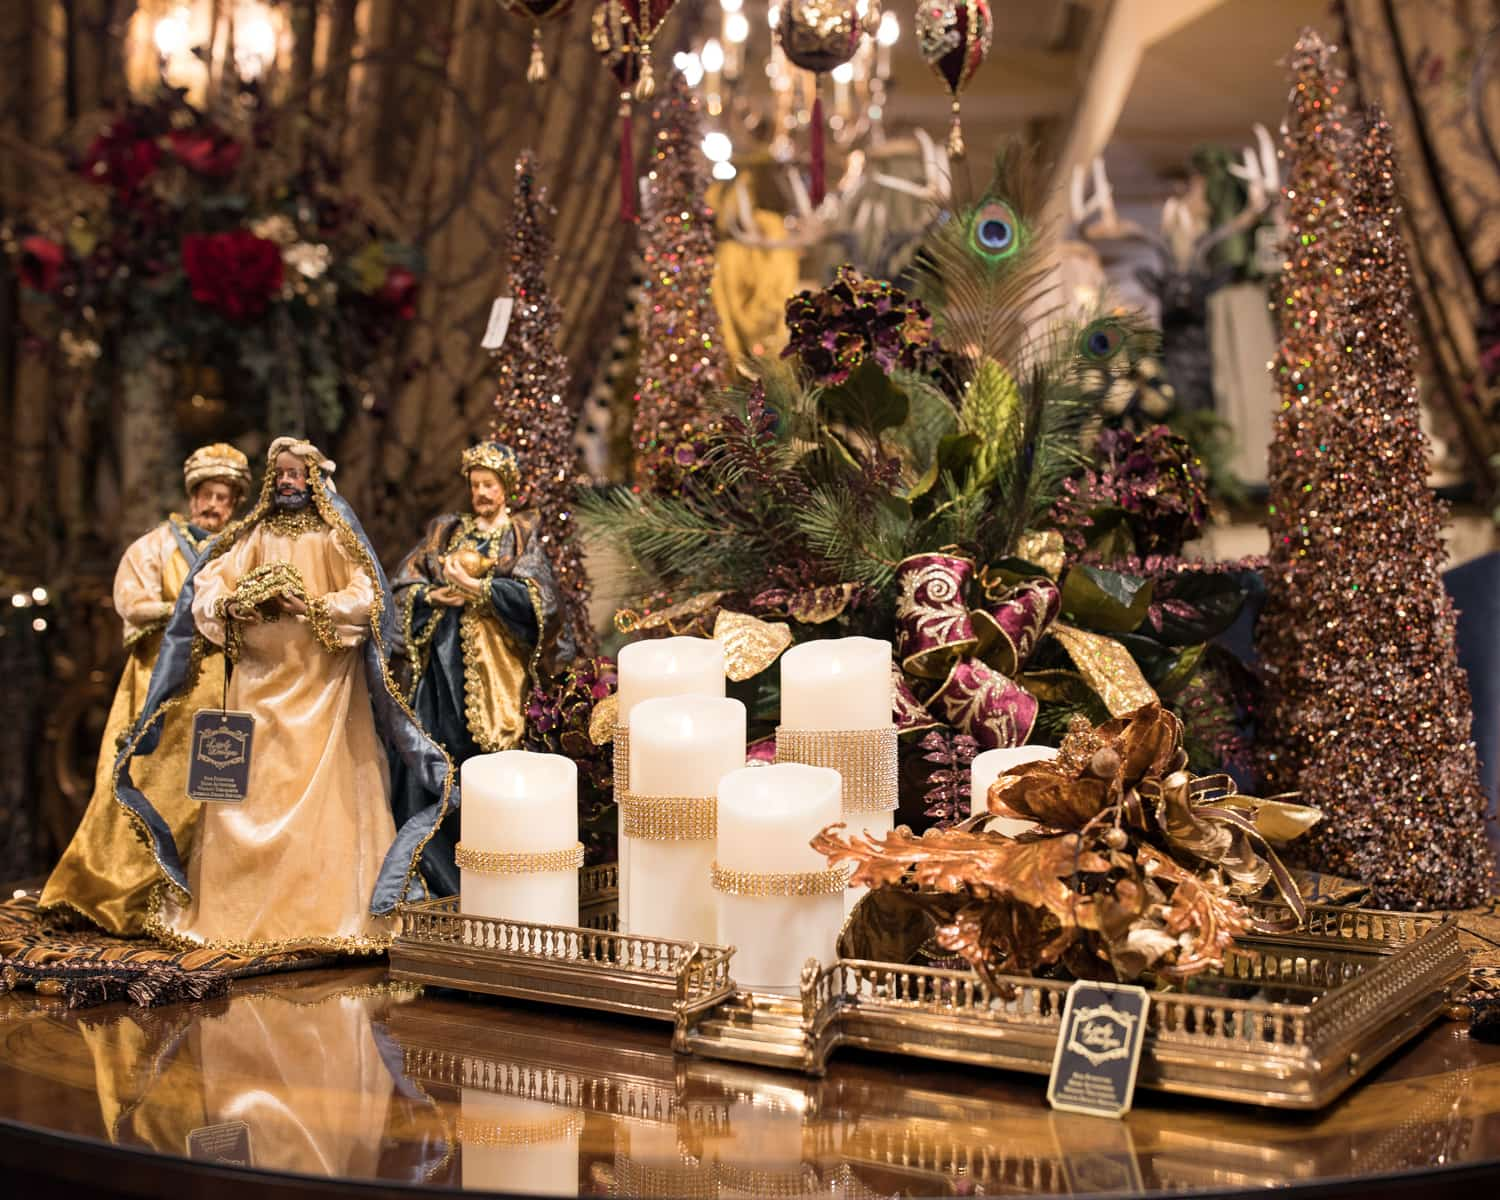 Linly-Designs-Luxury-Christmas-Decor-13 – Linly Designs